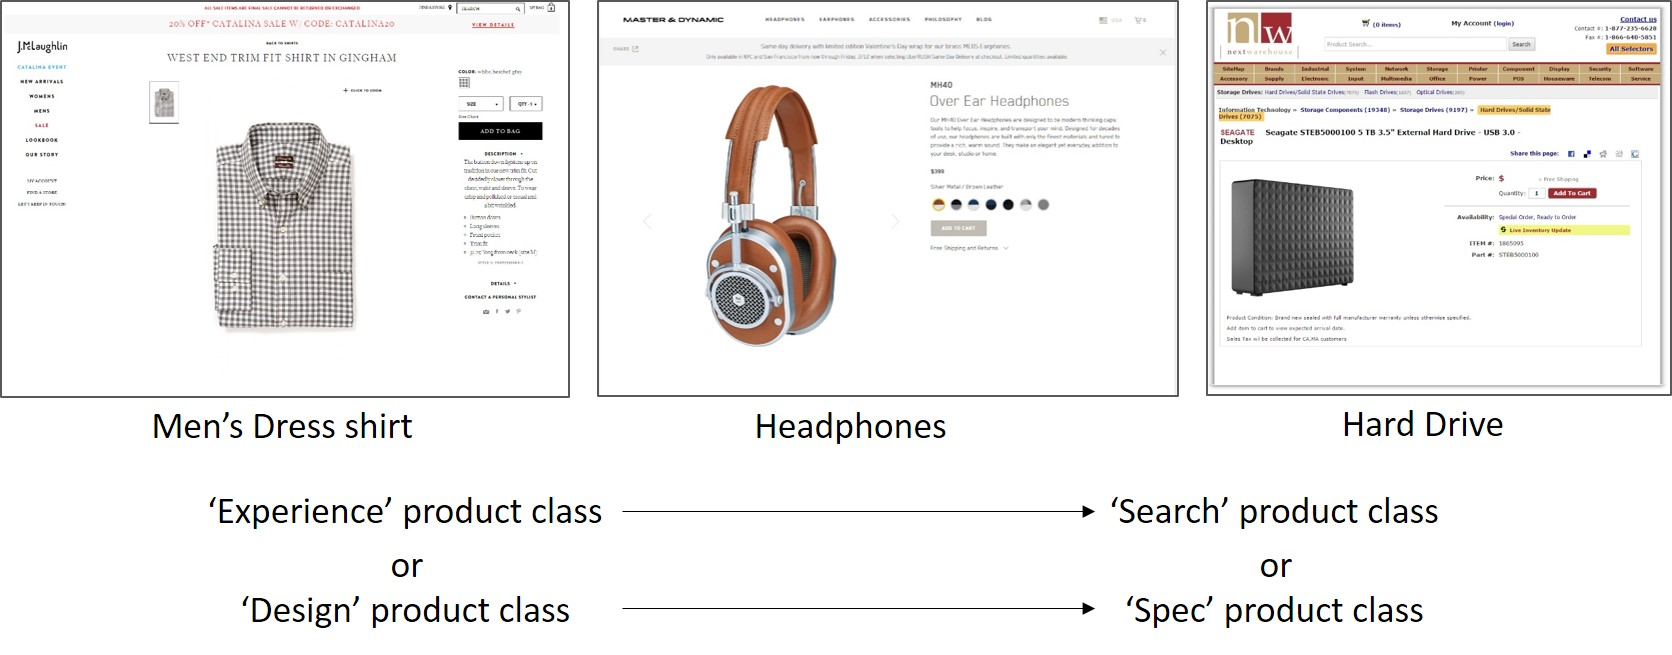 Product xamples ranging from shirt to headphones to hard drive